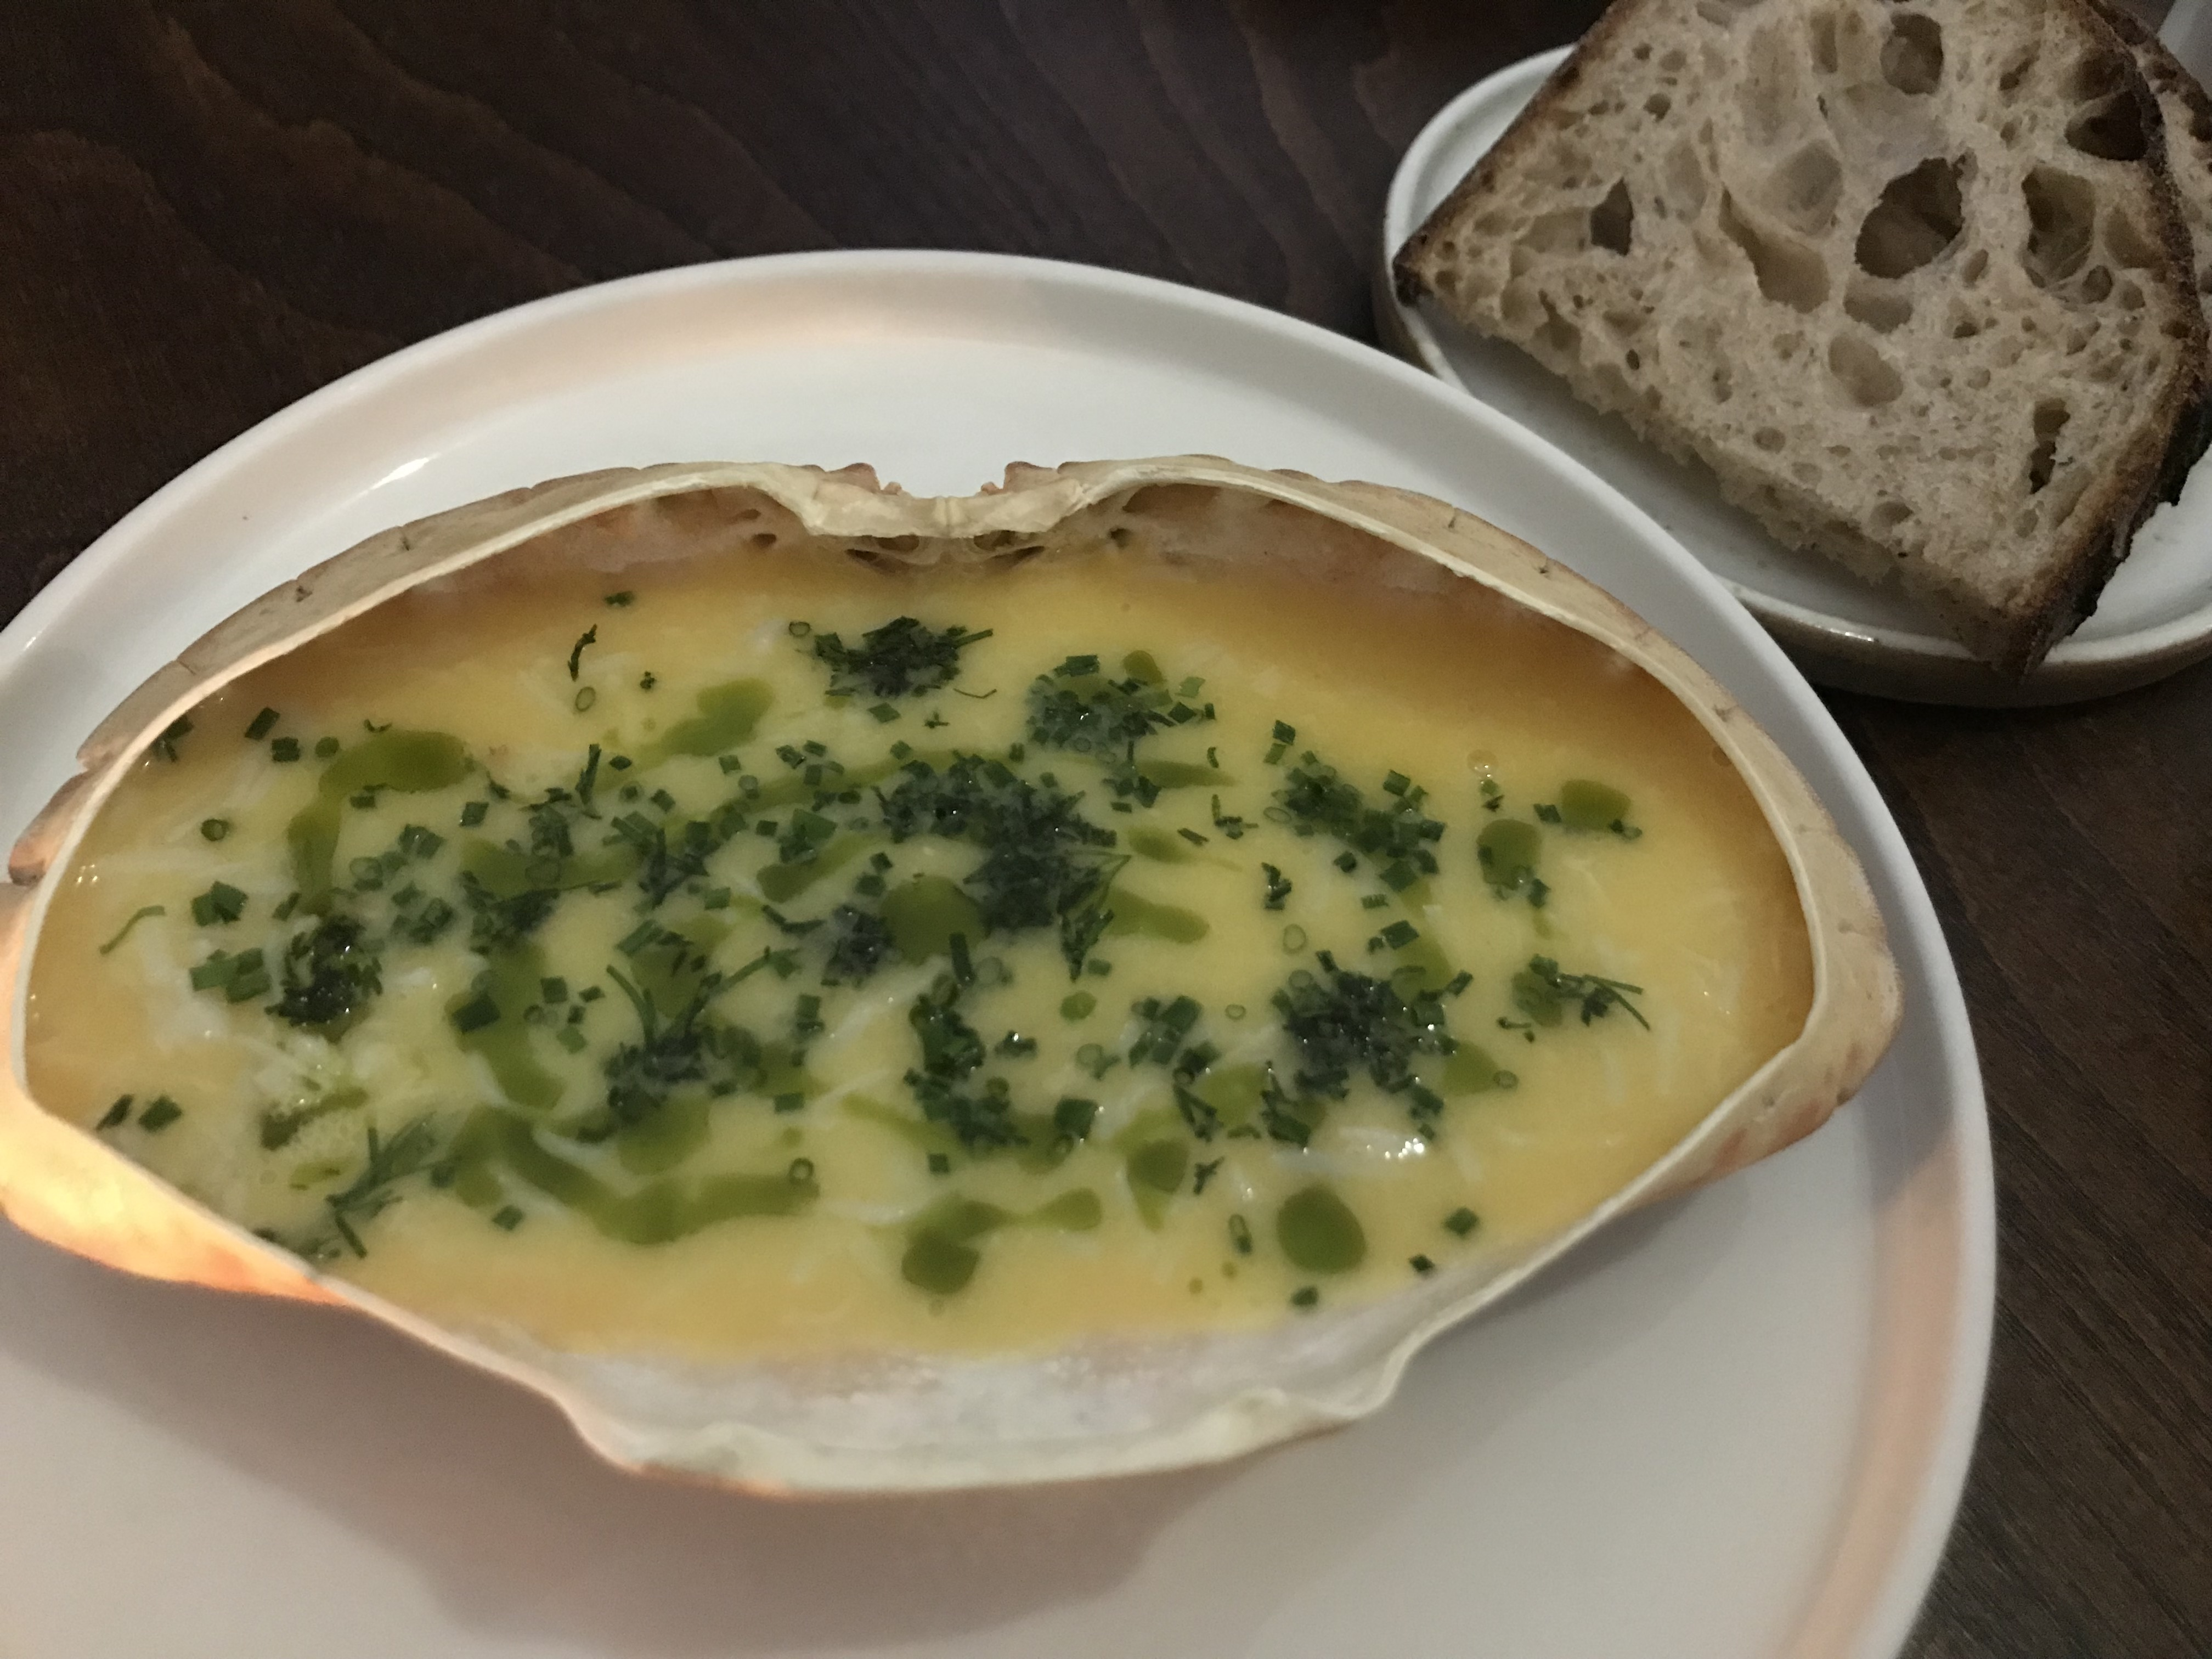 crab shell filled with butter topped with green herbs with plate of bread next to it